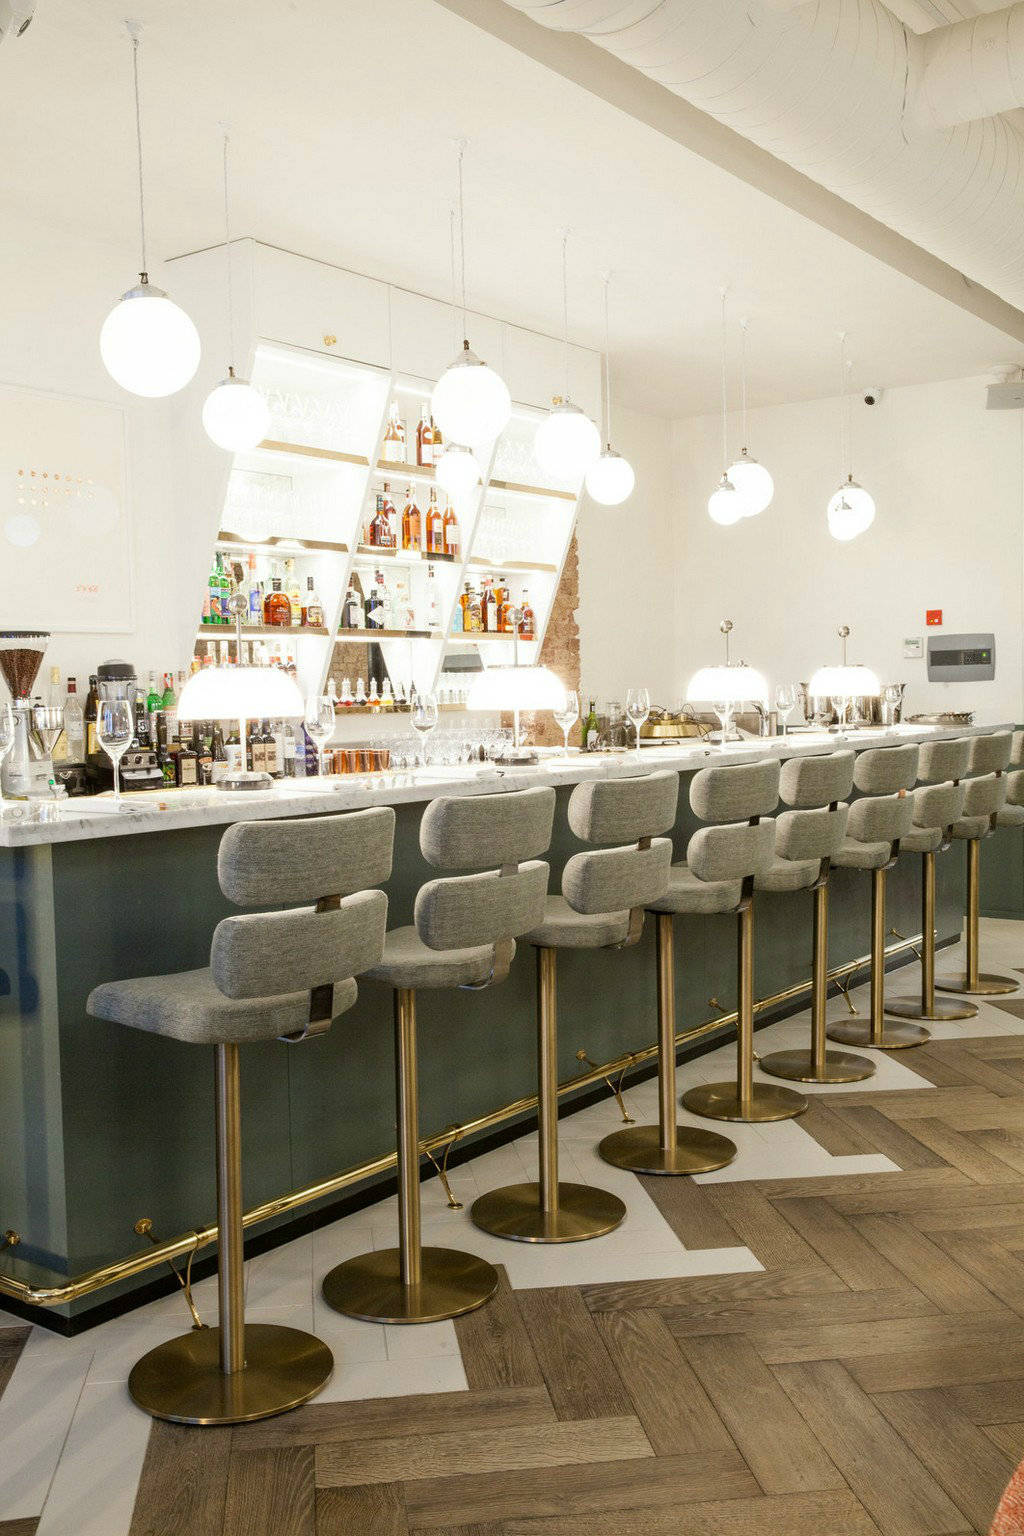 Perfect your home look with these restaurant bar chairs